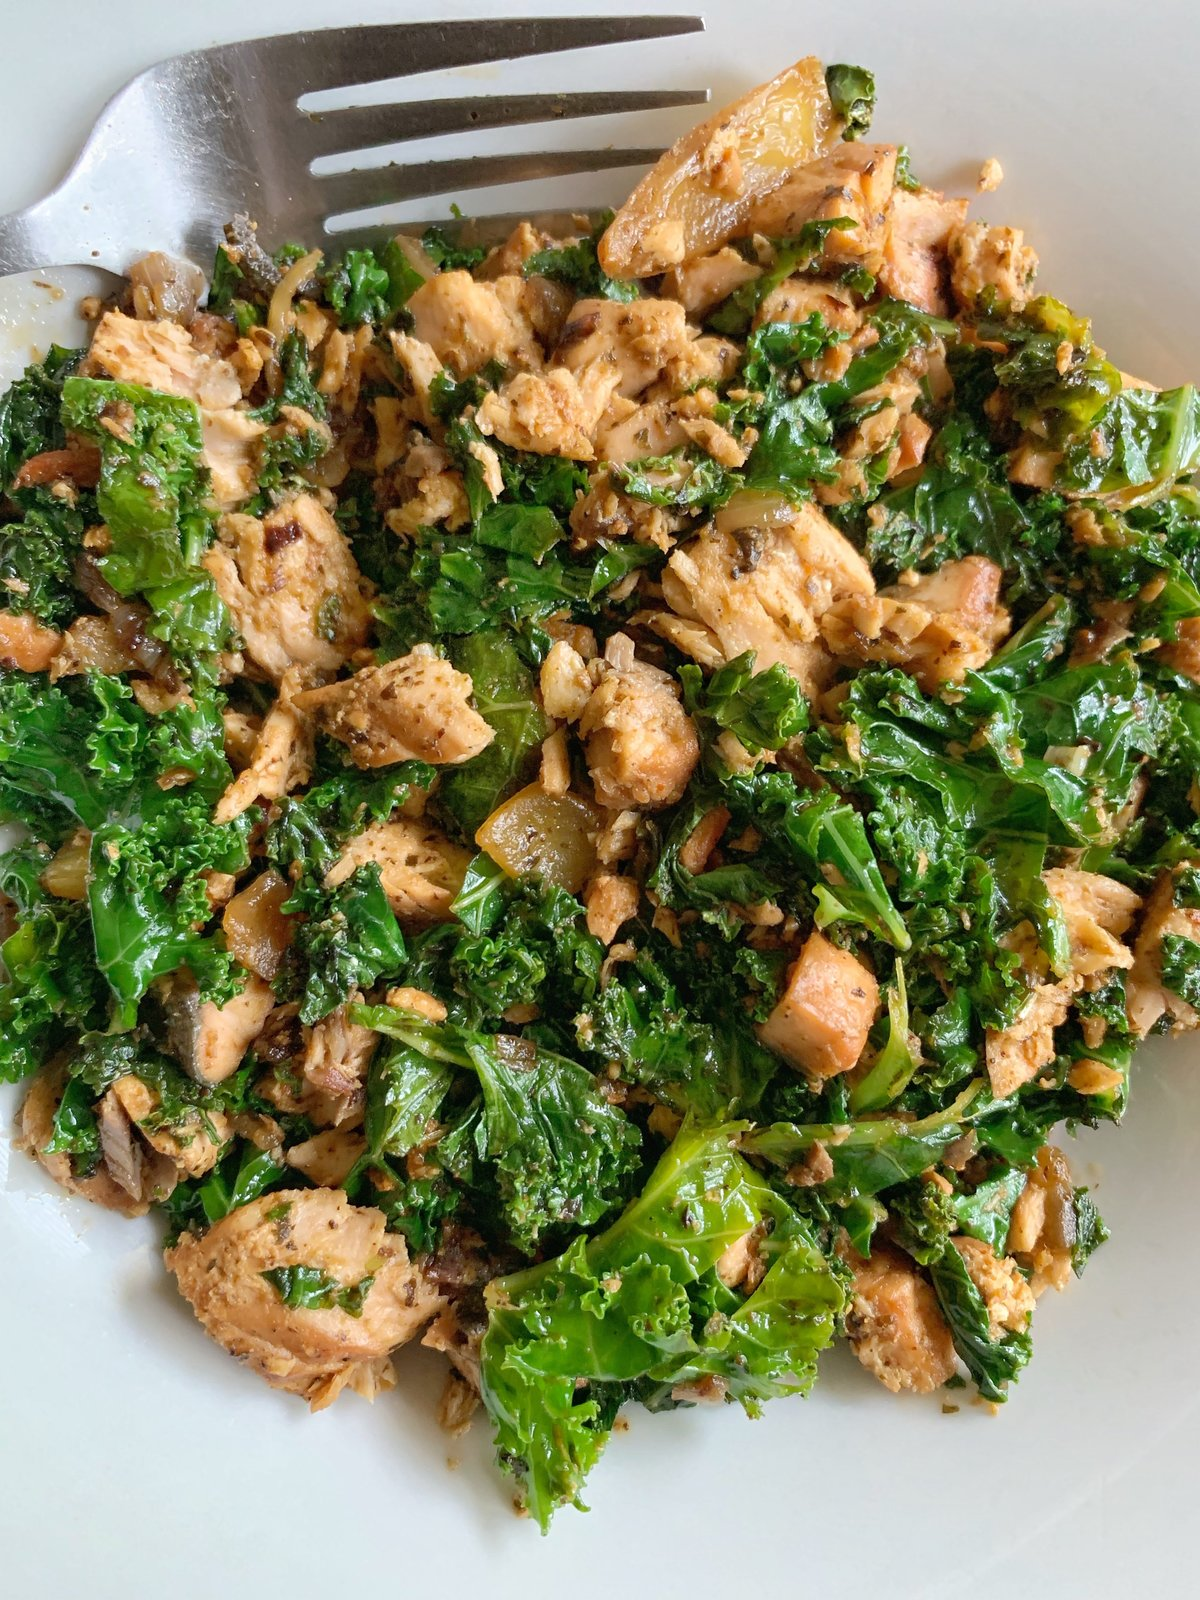 Grilled-Salmon-Kale-Salad_3819